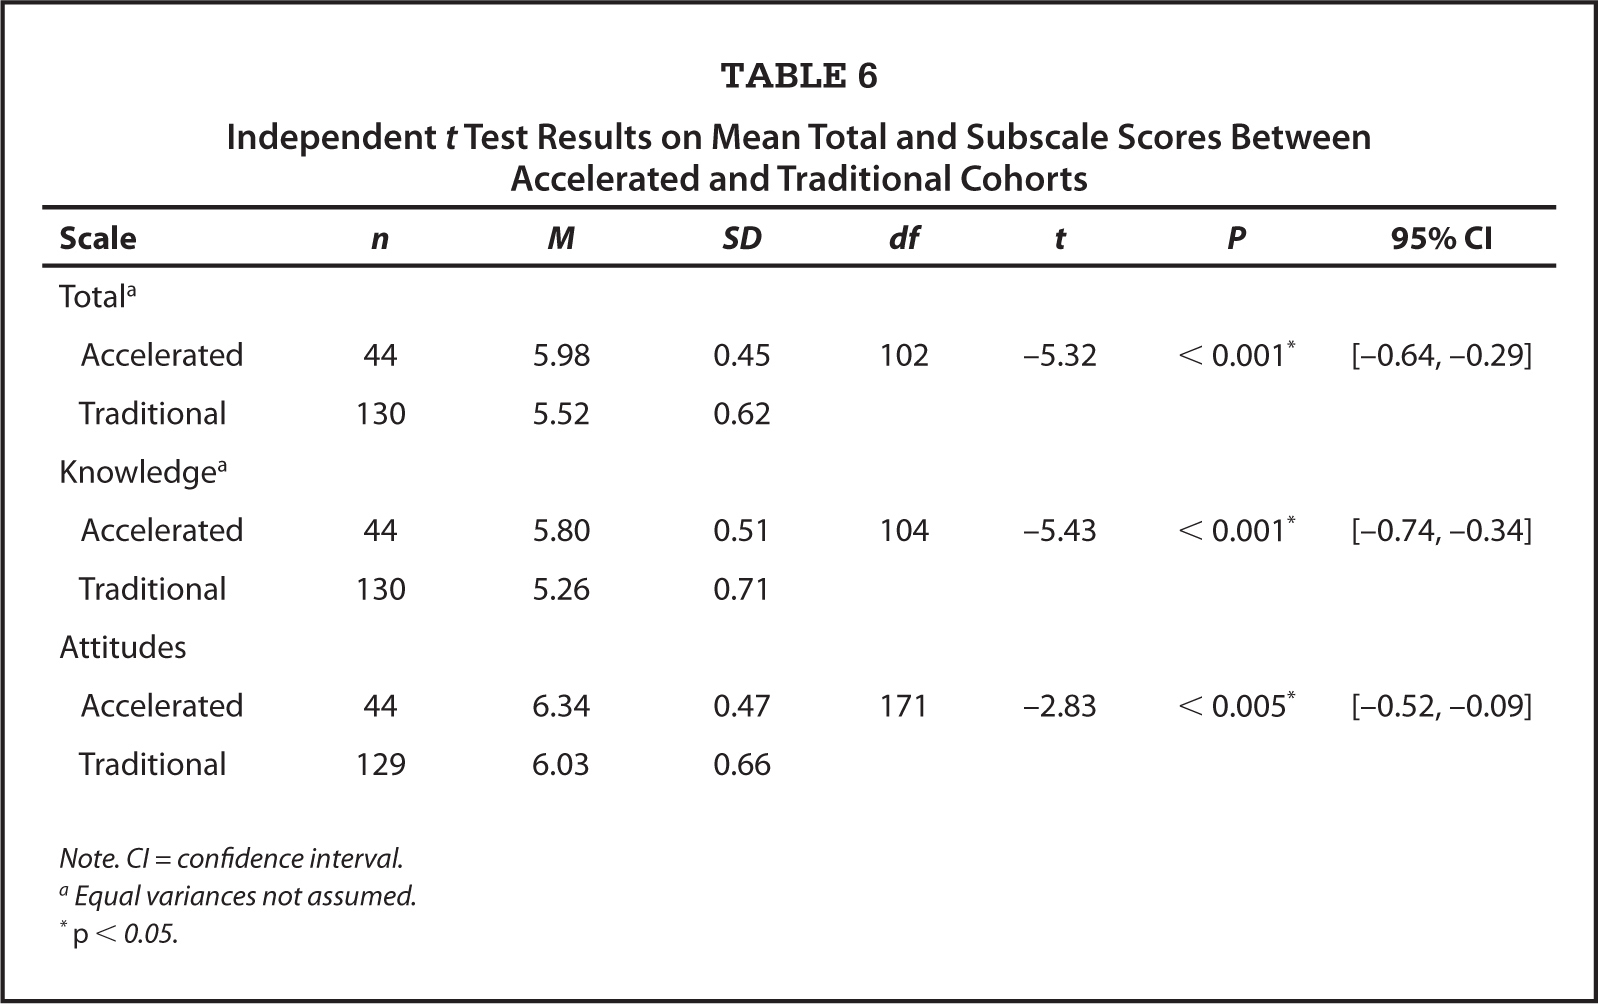 Independent t Test Results on Mean Total and Subscale Scores Between Accelerated and Traditional Cohorts